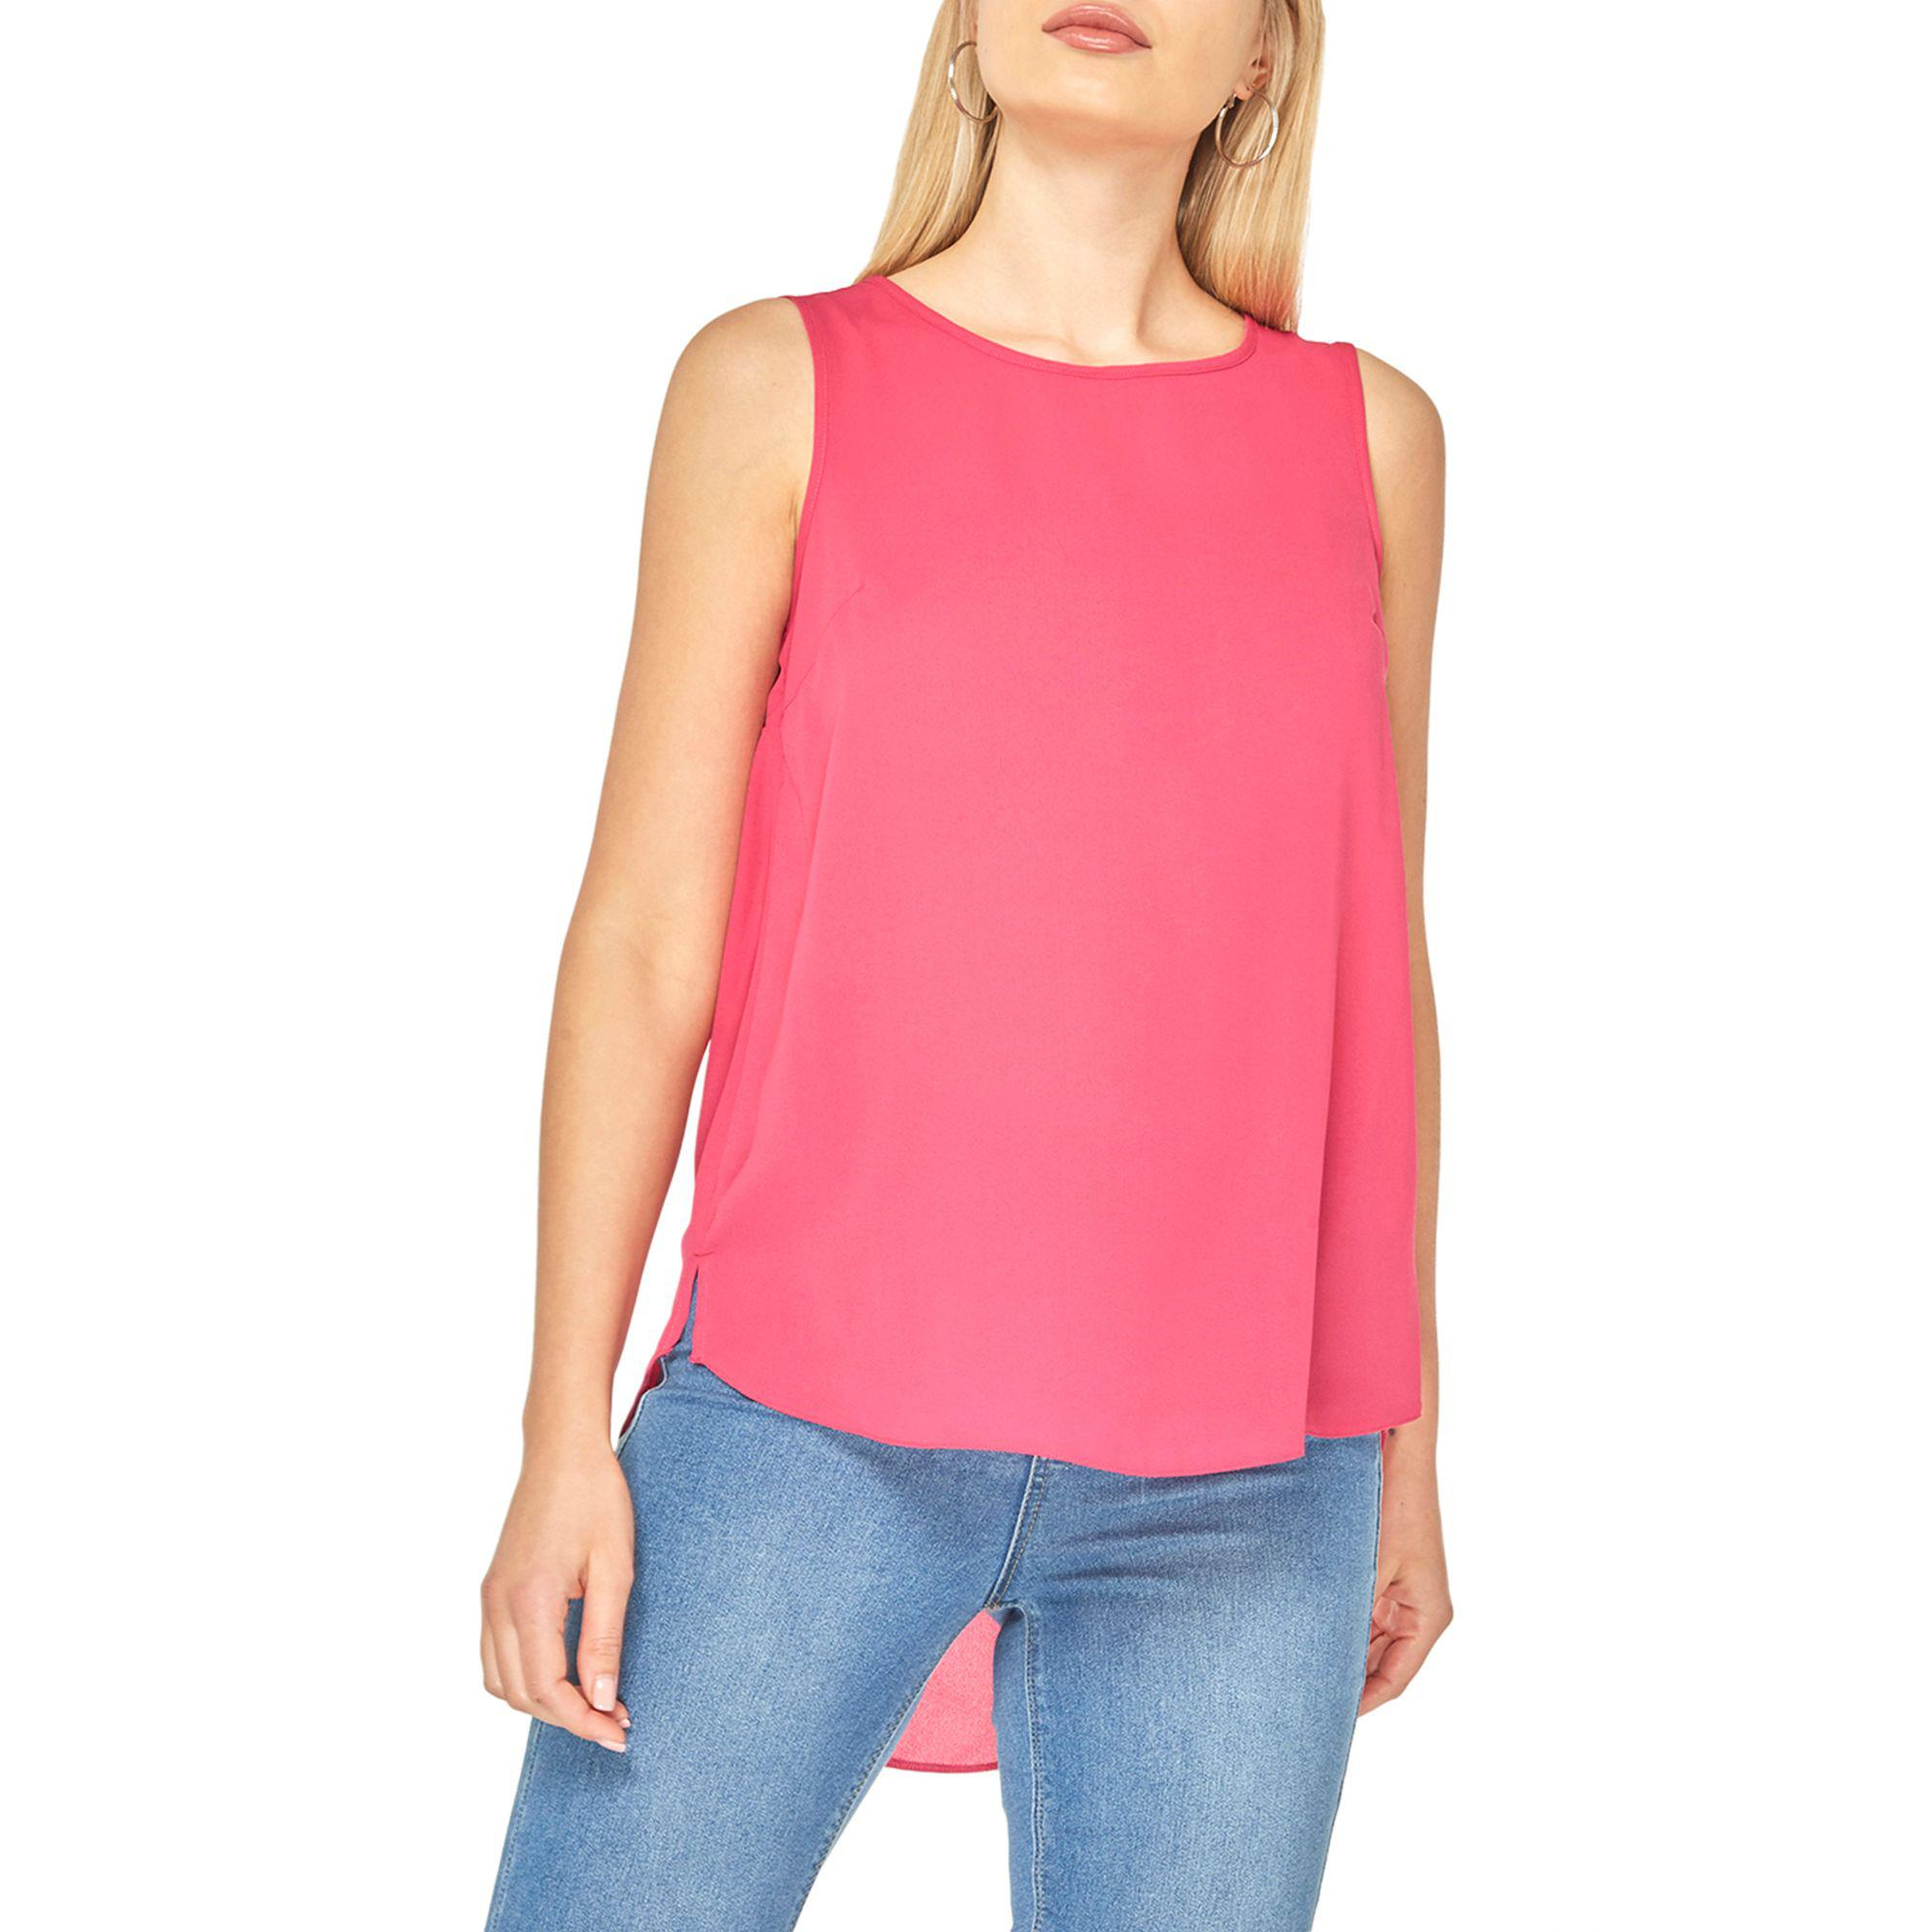 Pre Order Cheap Online Dorothy Perkins Womens Fushia Sleeveless Top- Good Selling Clearance Pictures Free Shipping Largest Supplier VmHMswXua7